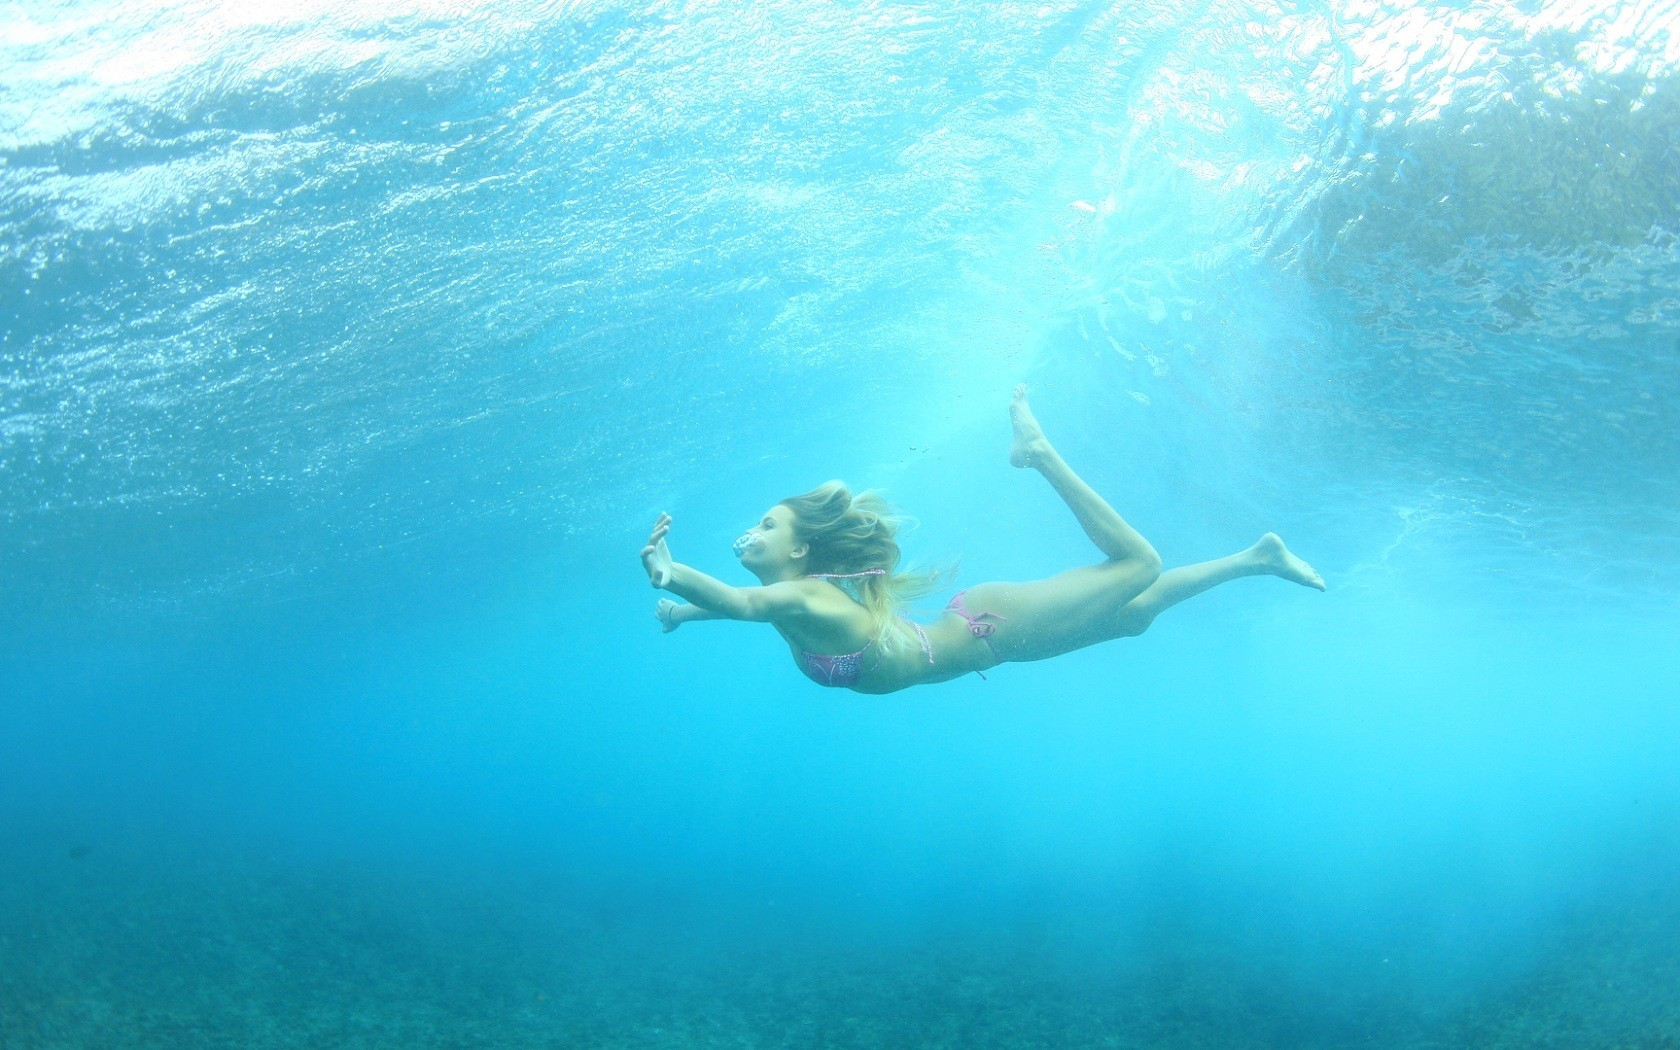 woman bikini swimming underwater HD Wallpaper